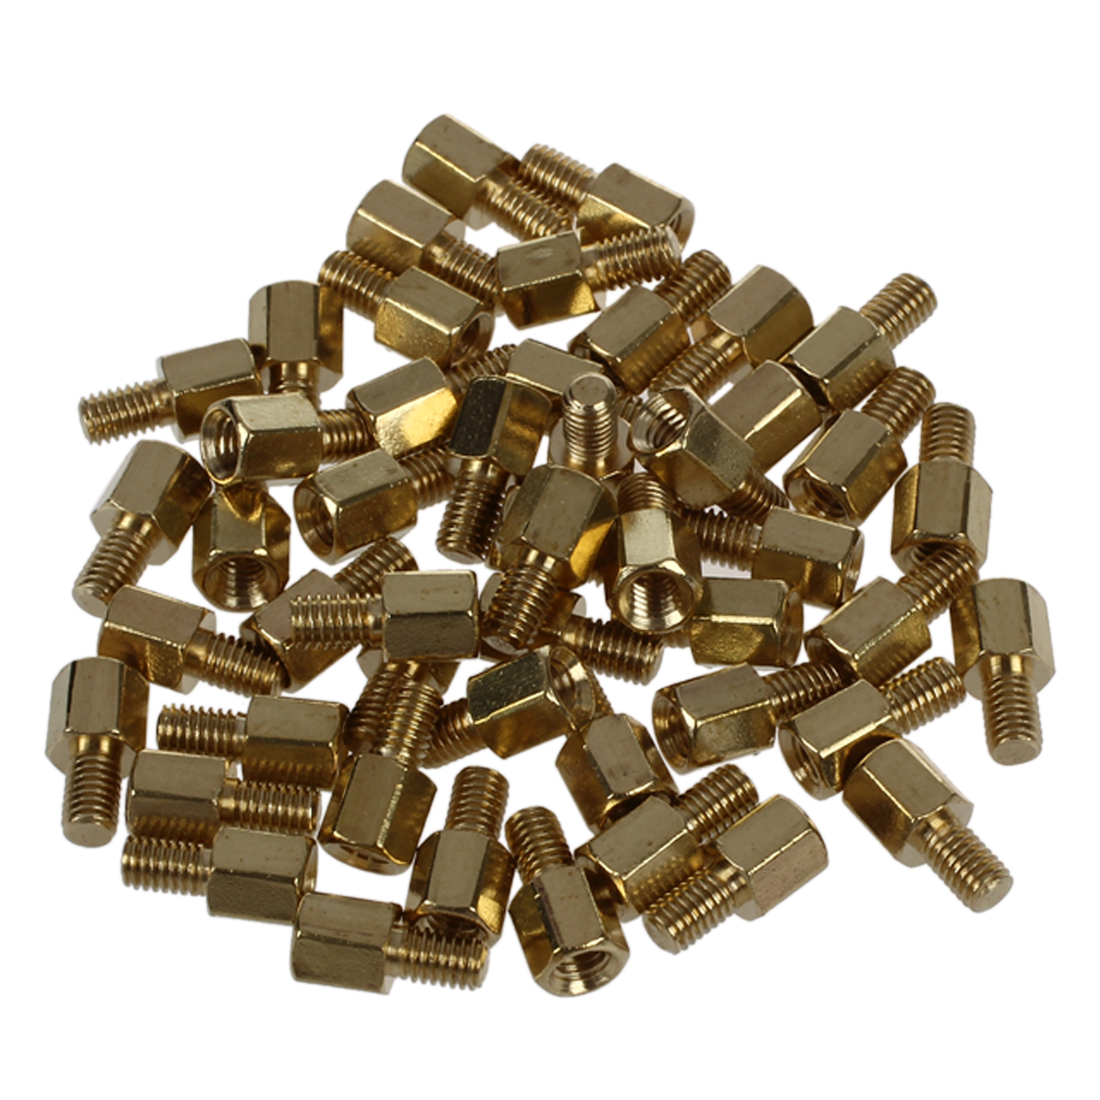 50 Pcs Brass Screw PCB Standoffs Hexagonal Spacers M3 Male x M3 Female 5mm m3 x 15mm hexagon brass cylinder golden 50 pcs